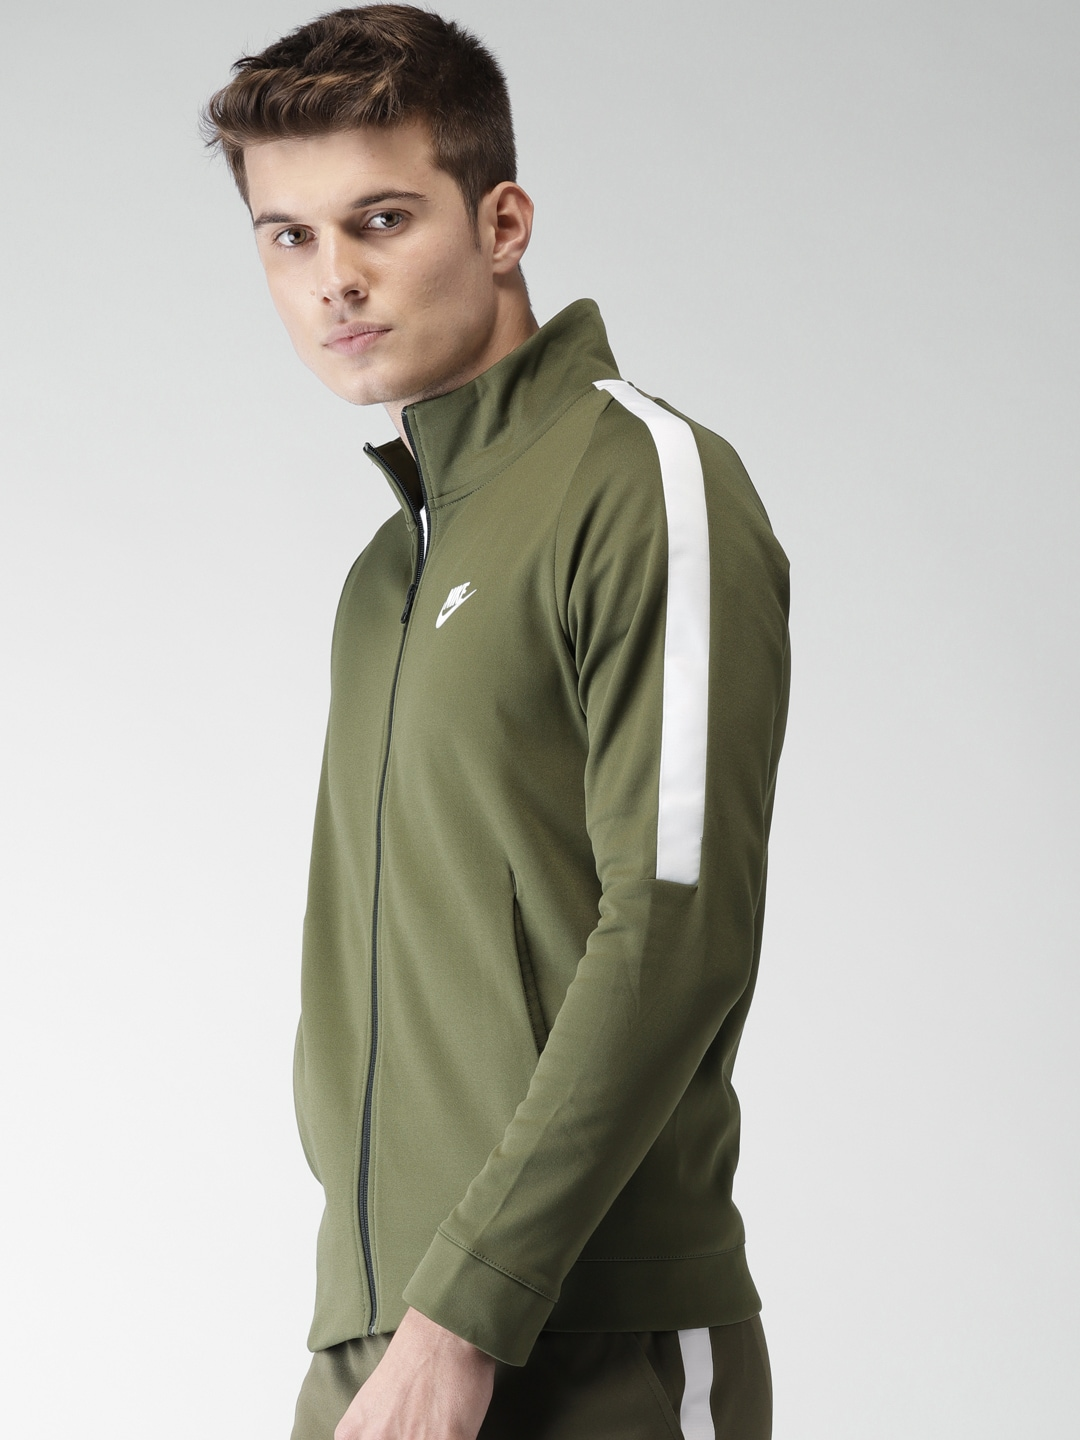 d3a023ff1107 Nike N98 Jackets - Buy Nike N98 Jackets online in India